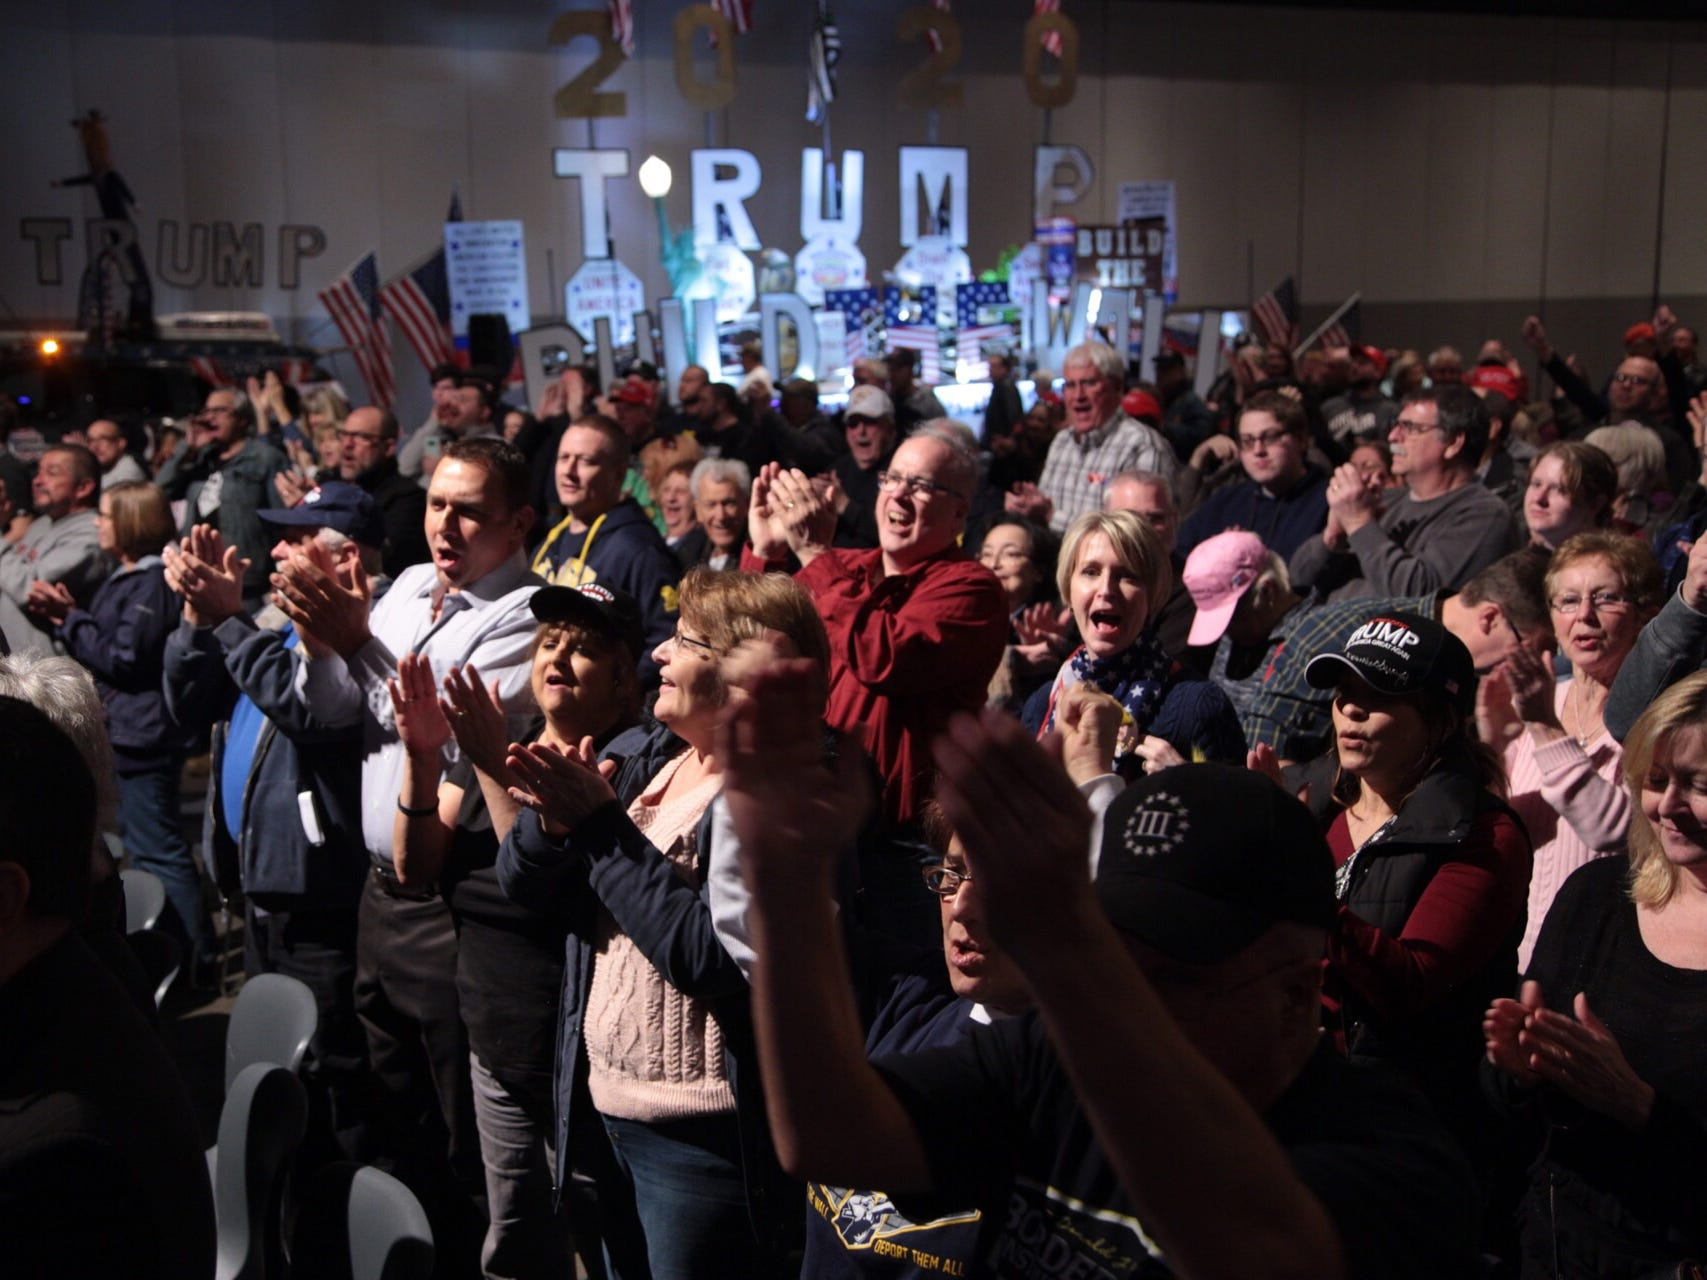 """Supporters cheer during Steve Bannon's nationwide tour stop named """"We Build the Wall"""" in support Trump's wish for $7-billion expansion of border wall with Mexico, aimed at stopping illegal immigration on Thursday, March 14, 2019 at Cobo Center in downtown Detroit."""